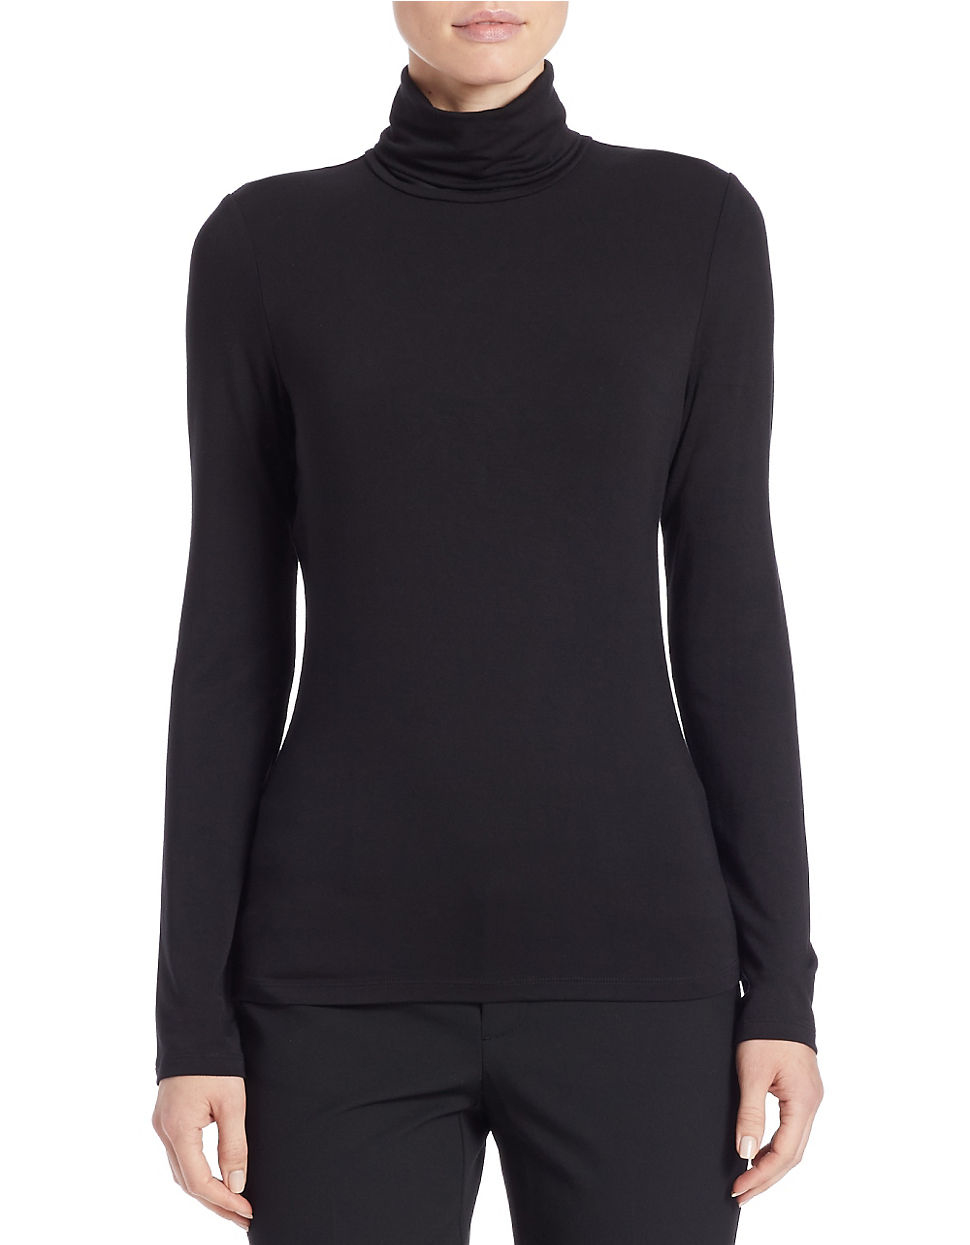 Lord Taylor Petite Fitted Turtleneck In Black Lyst